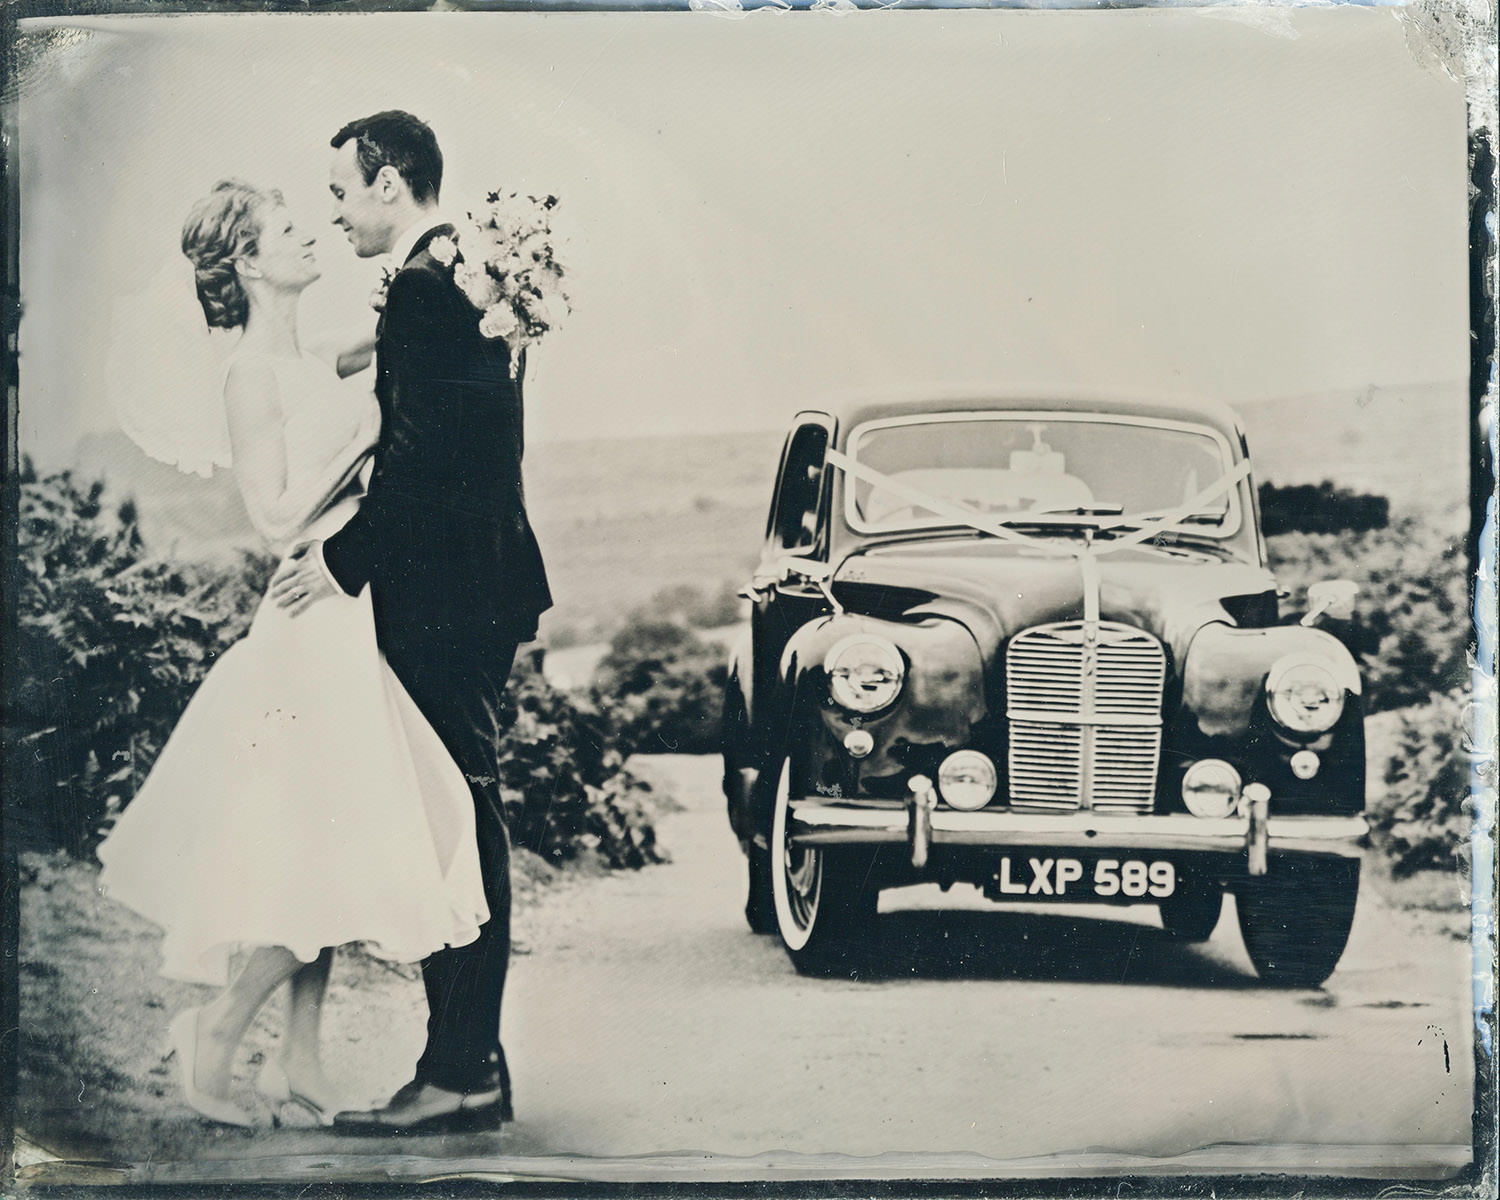 wetplate photograph of bride and groom with vintage car